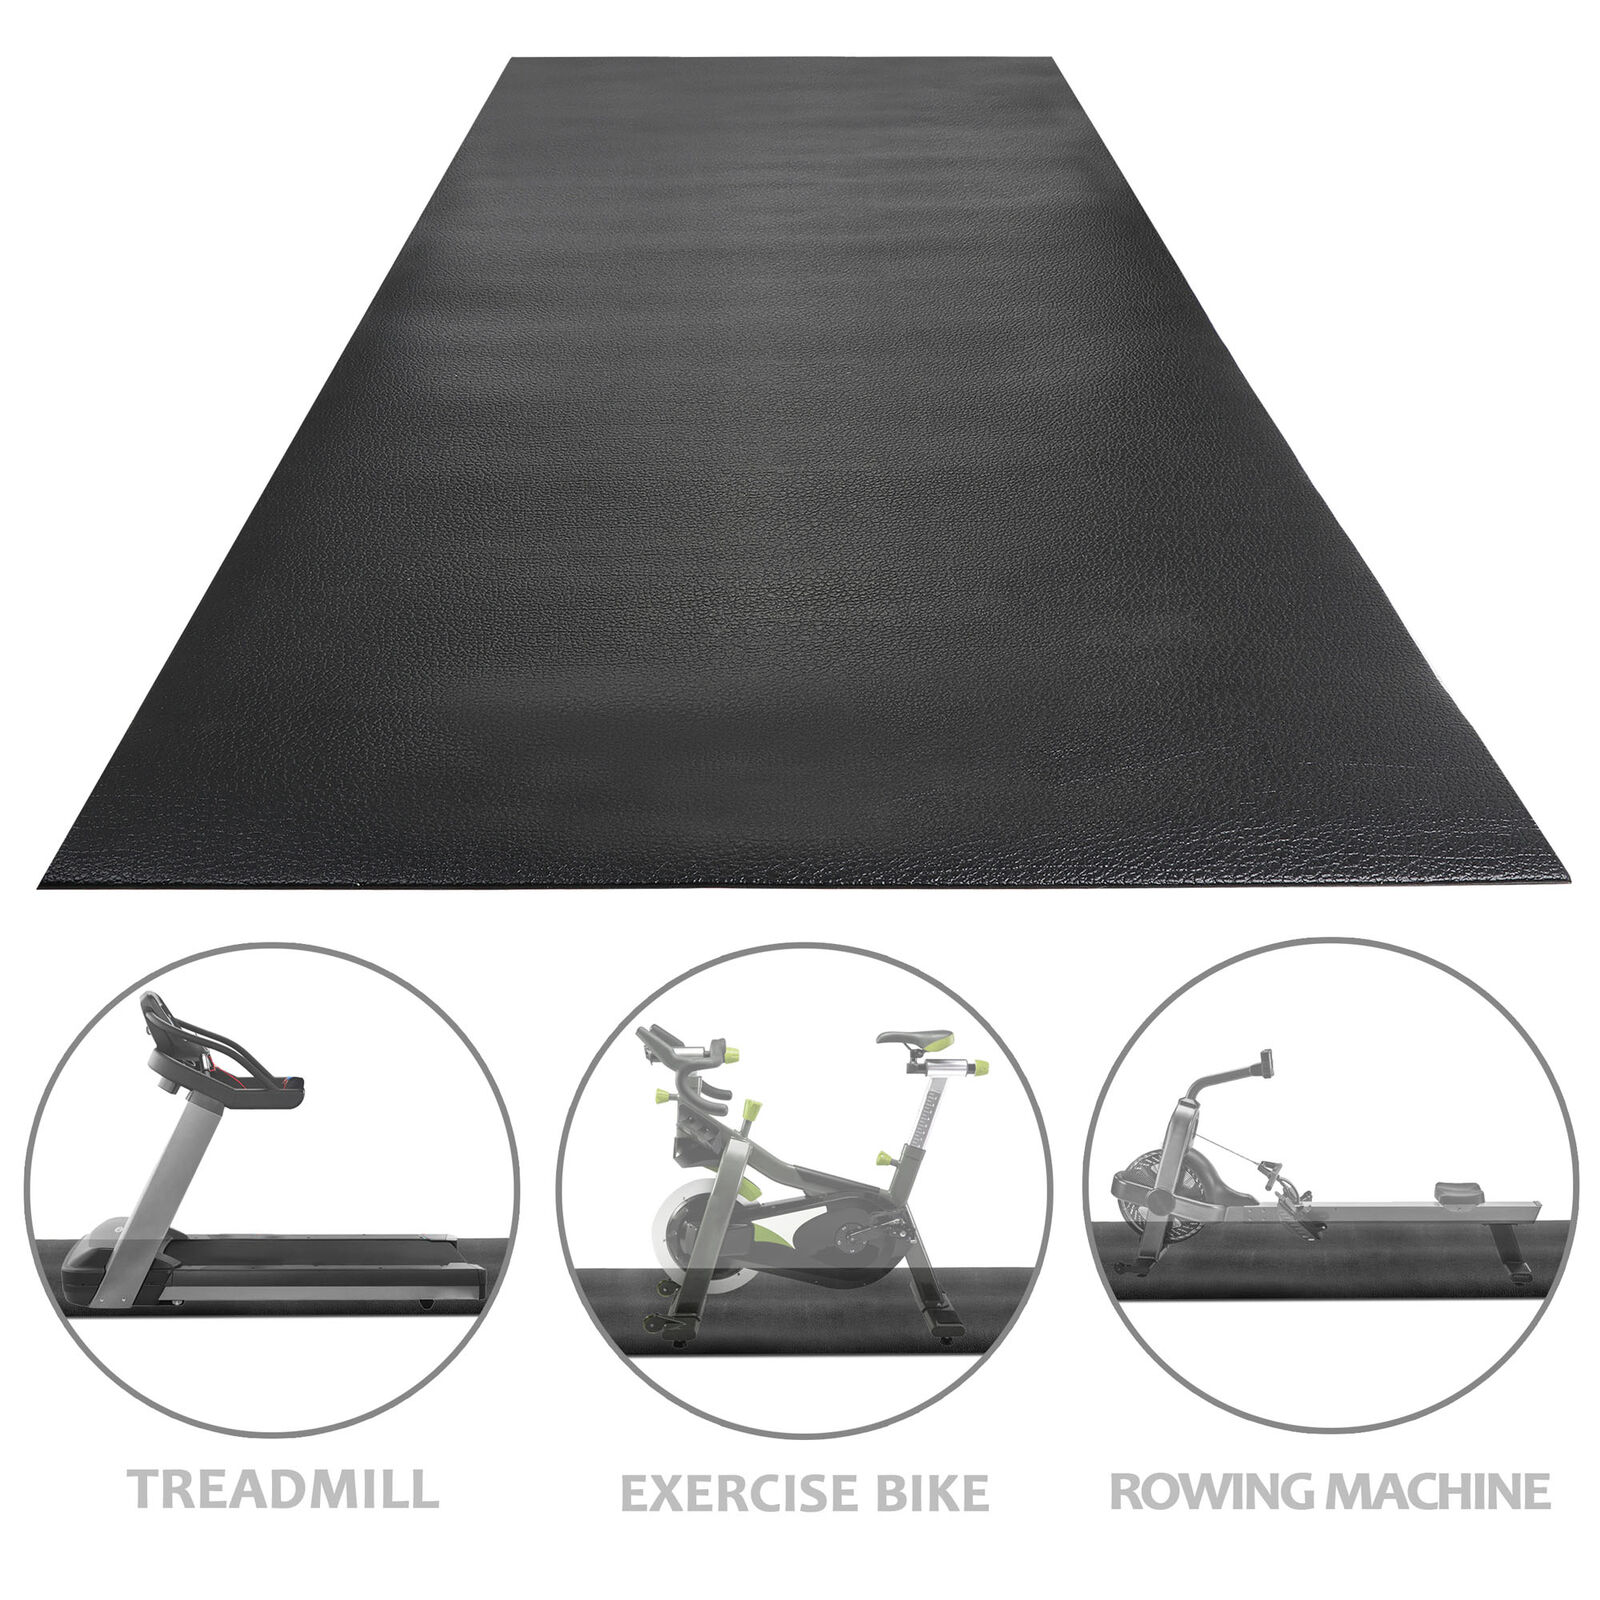 8 x 3FT Exercise Mat Gym Bike Treadmill Mat PVC Indoor Yoga